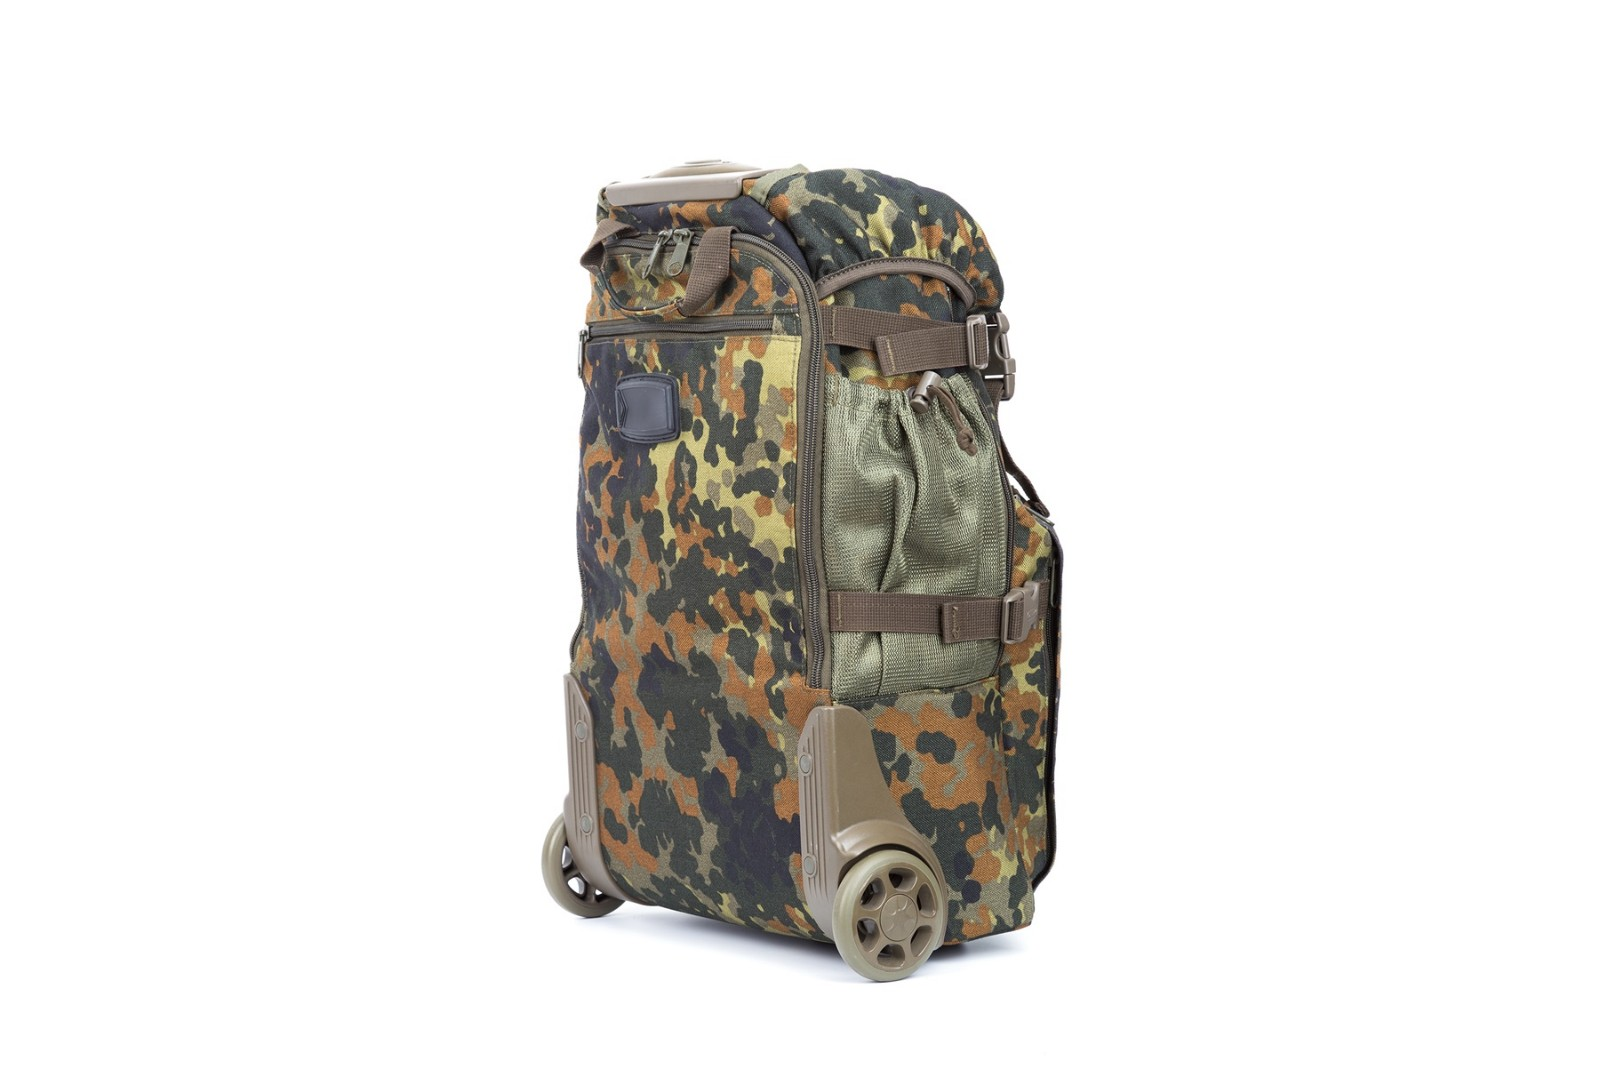 GF bags-Find Military Style Backpack Tactical Gear Backpack - GF Bags-6